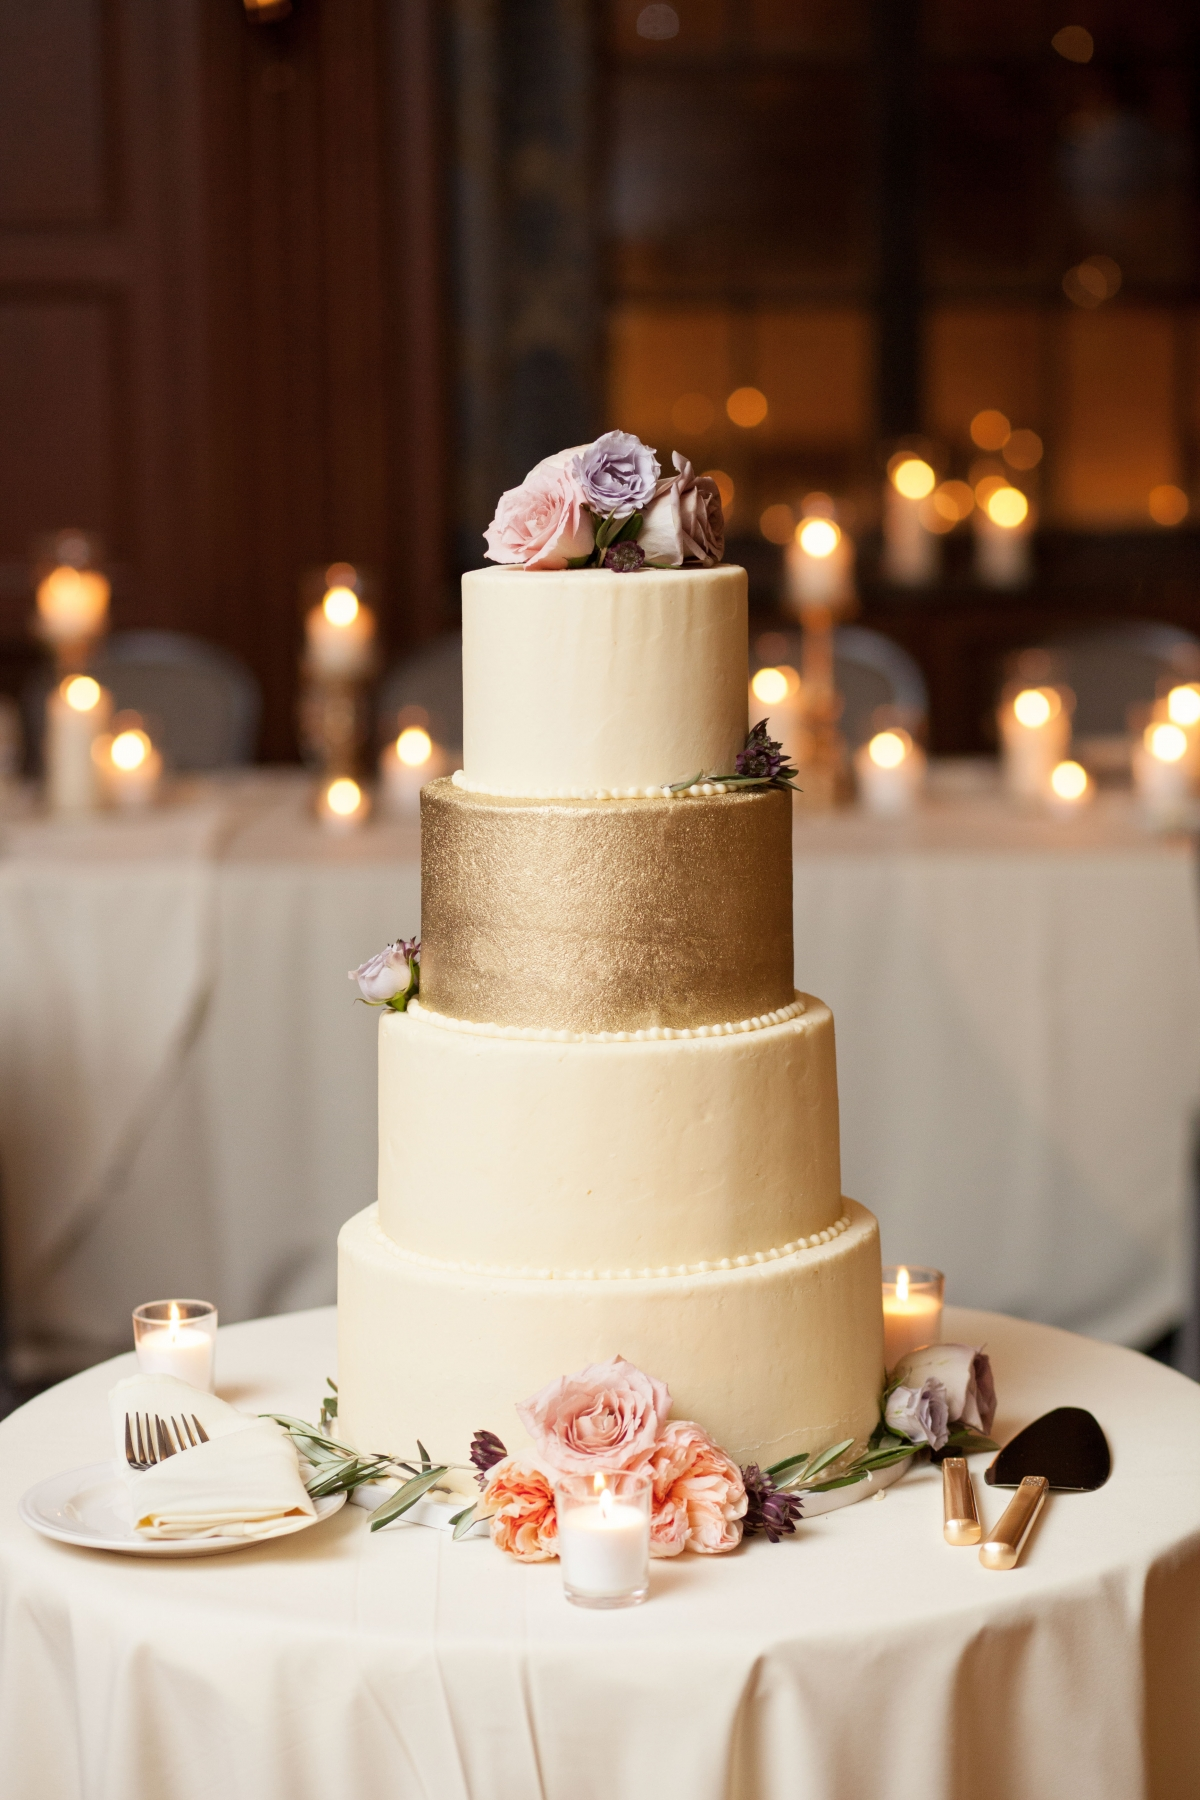 Wedding Cake by WestTown Bakery